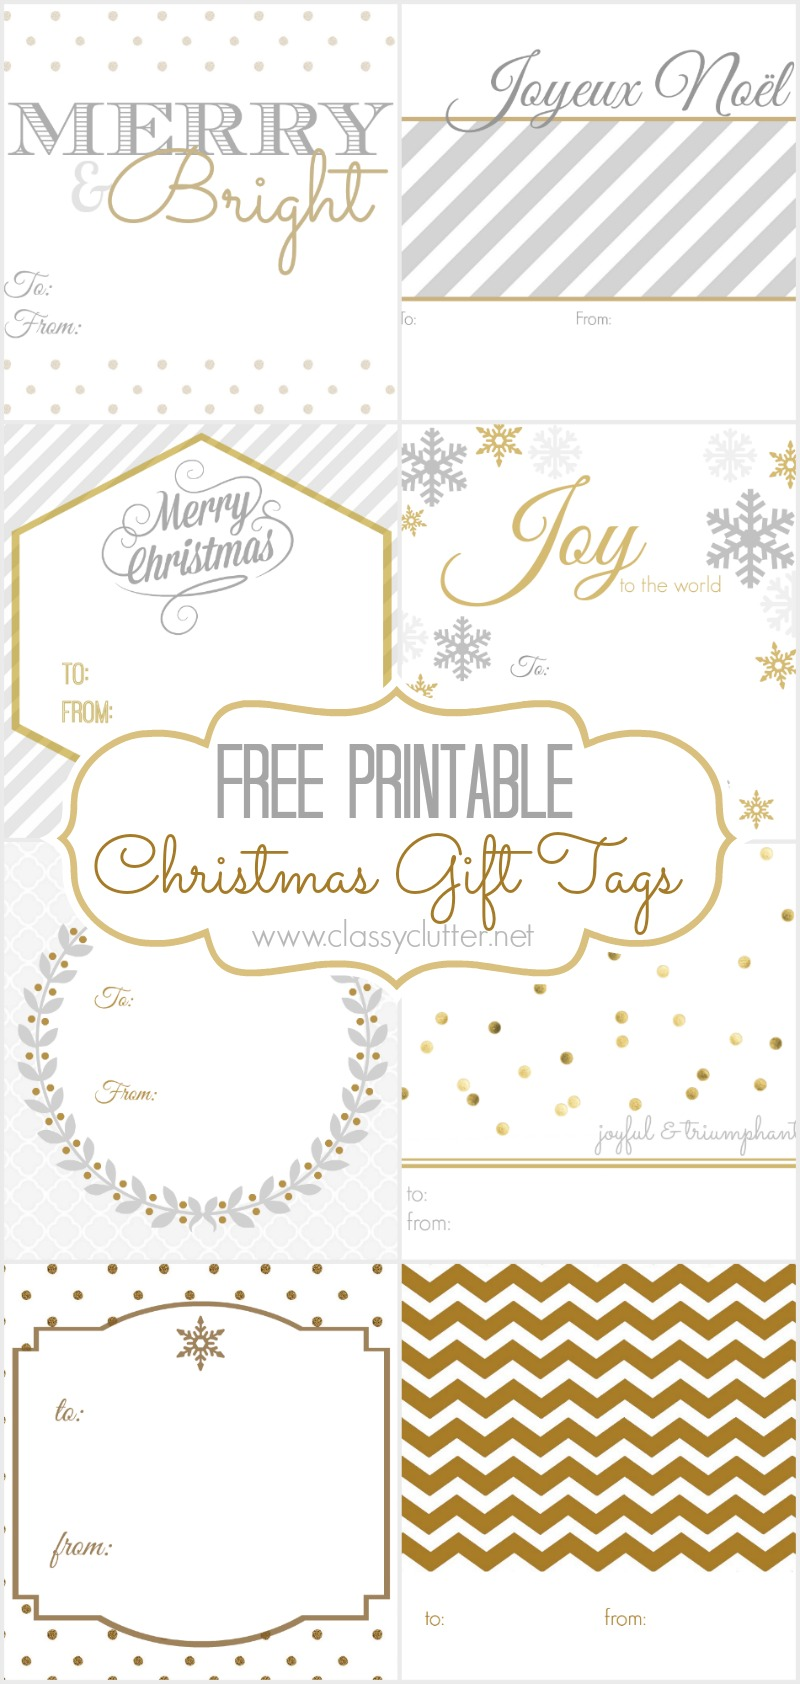 FREE Christmas Gift Tags - 8 printable designs - Classy Clutter